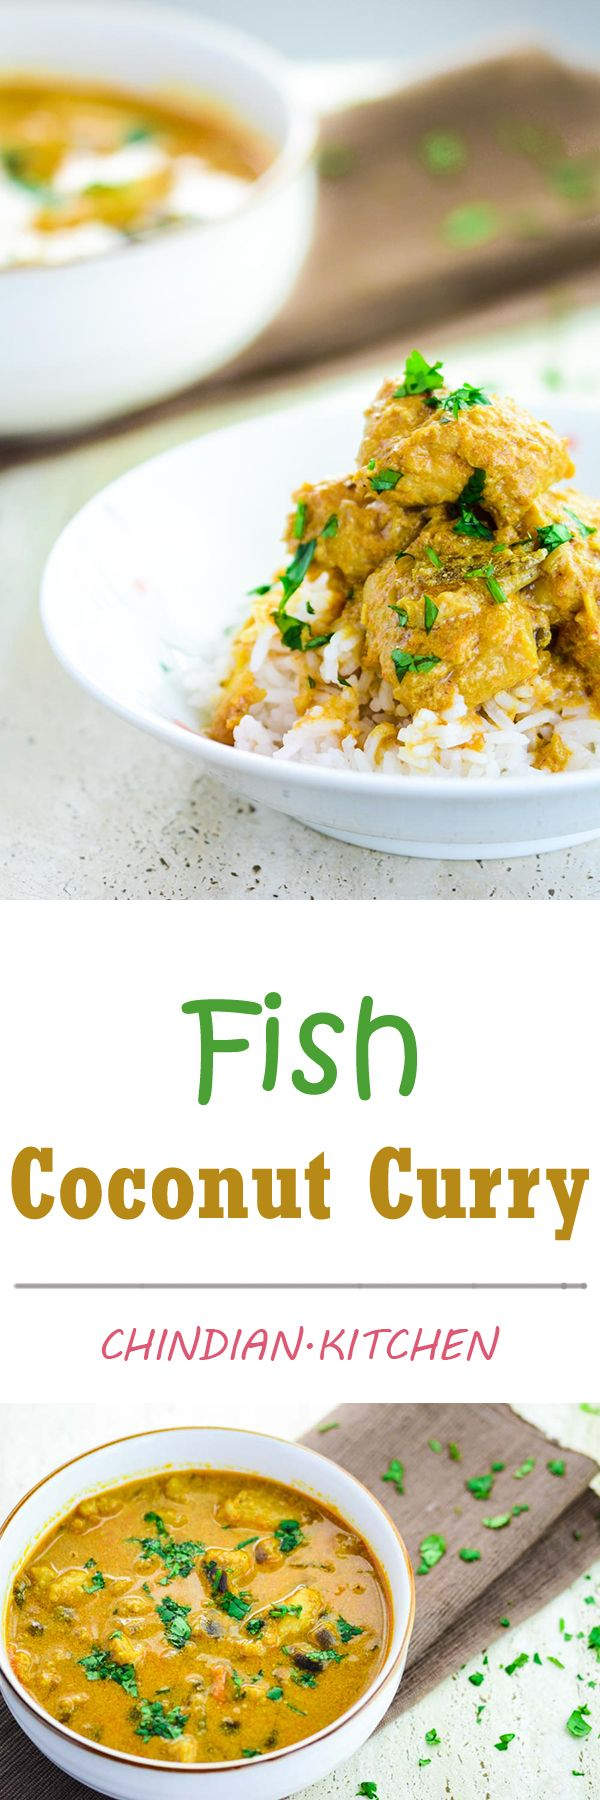 Creamy Fish Coconut Curry from scratch. Bursting with flavour of coriander, turmeric, chilli and garam masala.